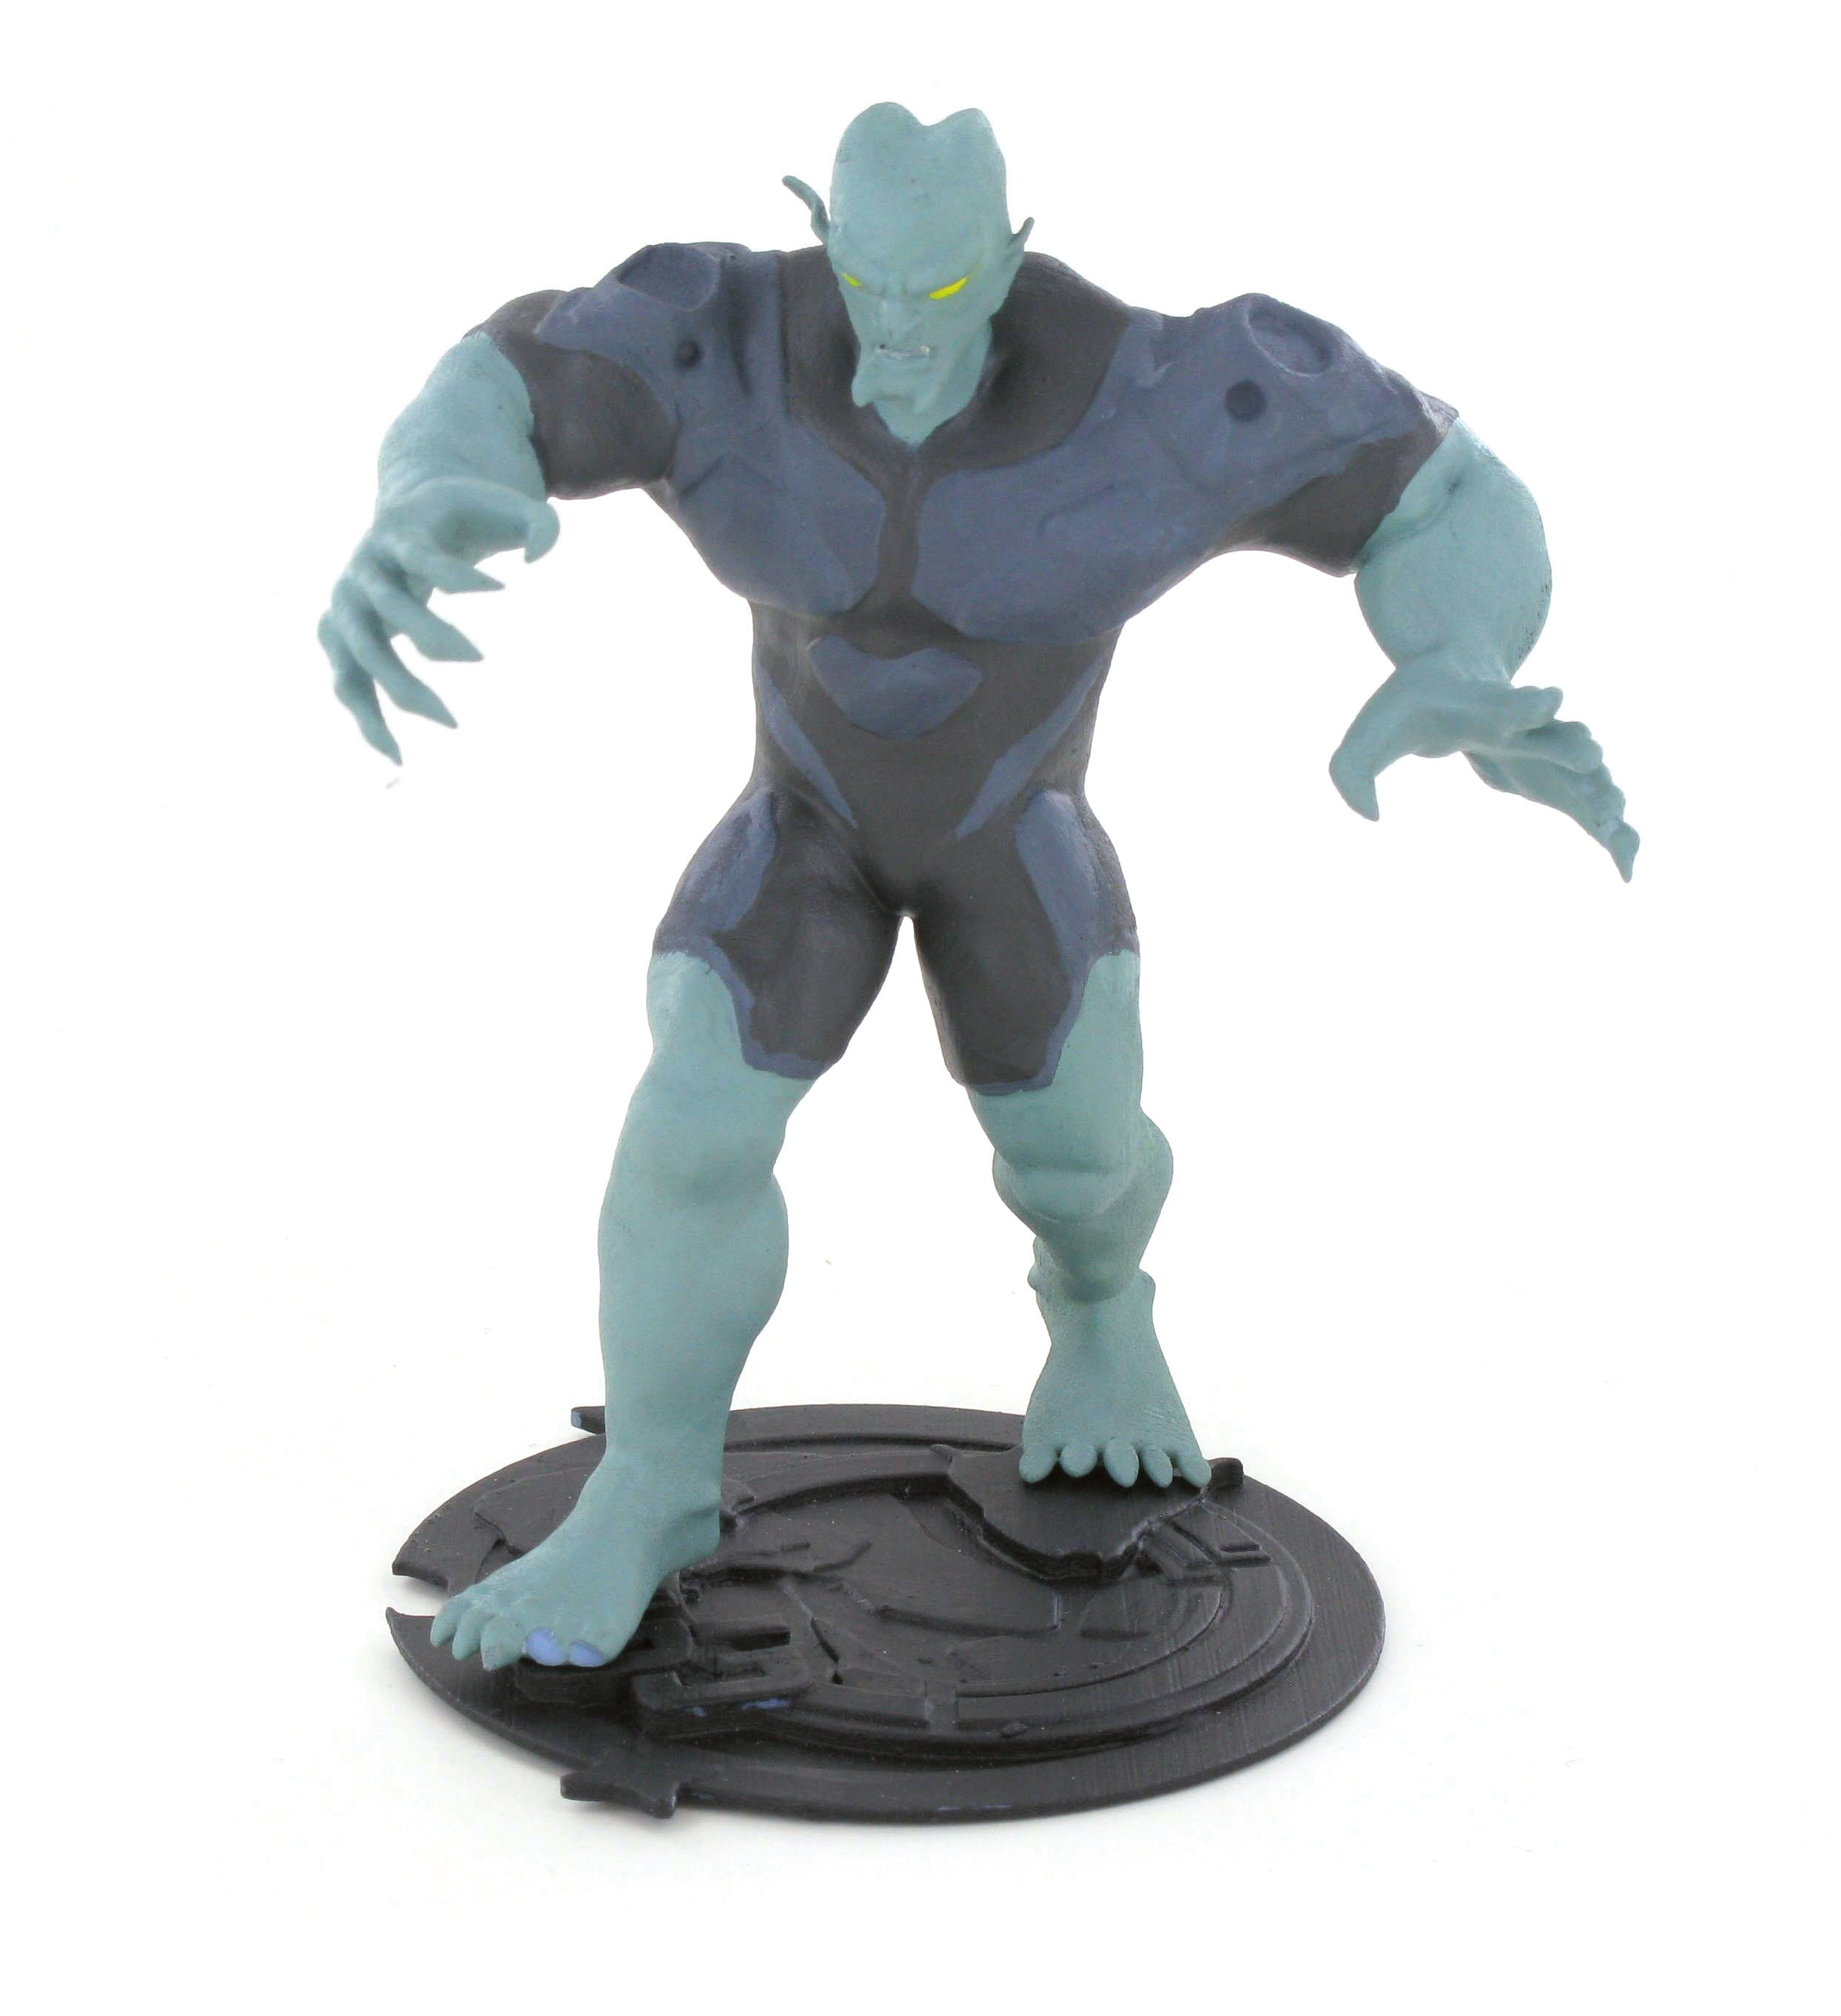 Figurine Spiderman - Green Goblin - 10 cm - Comansi